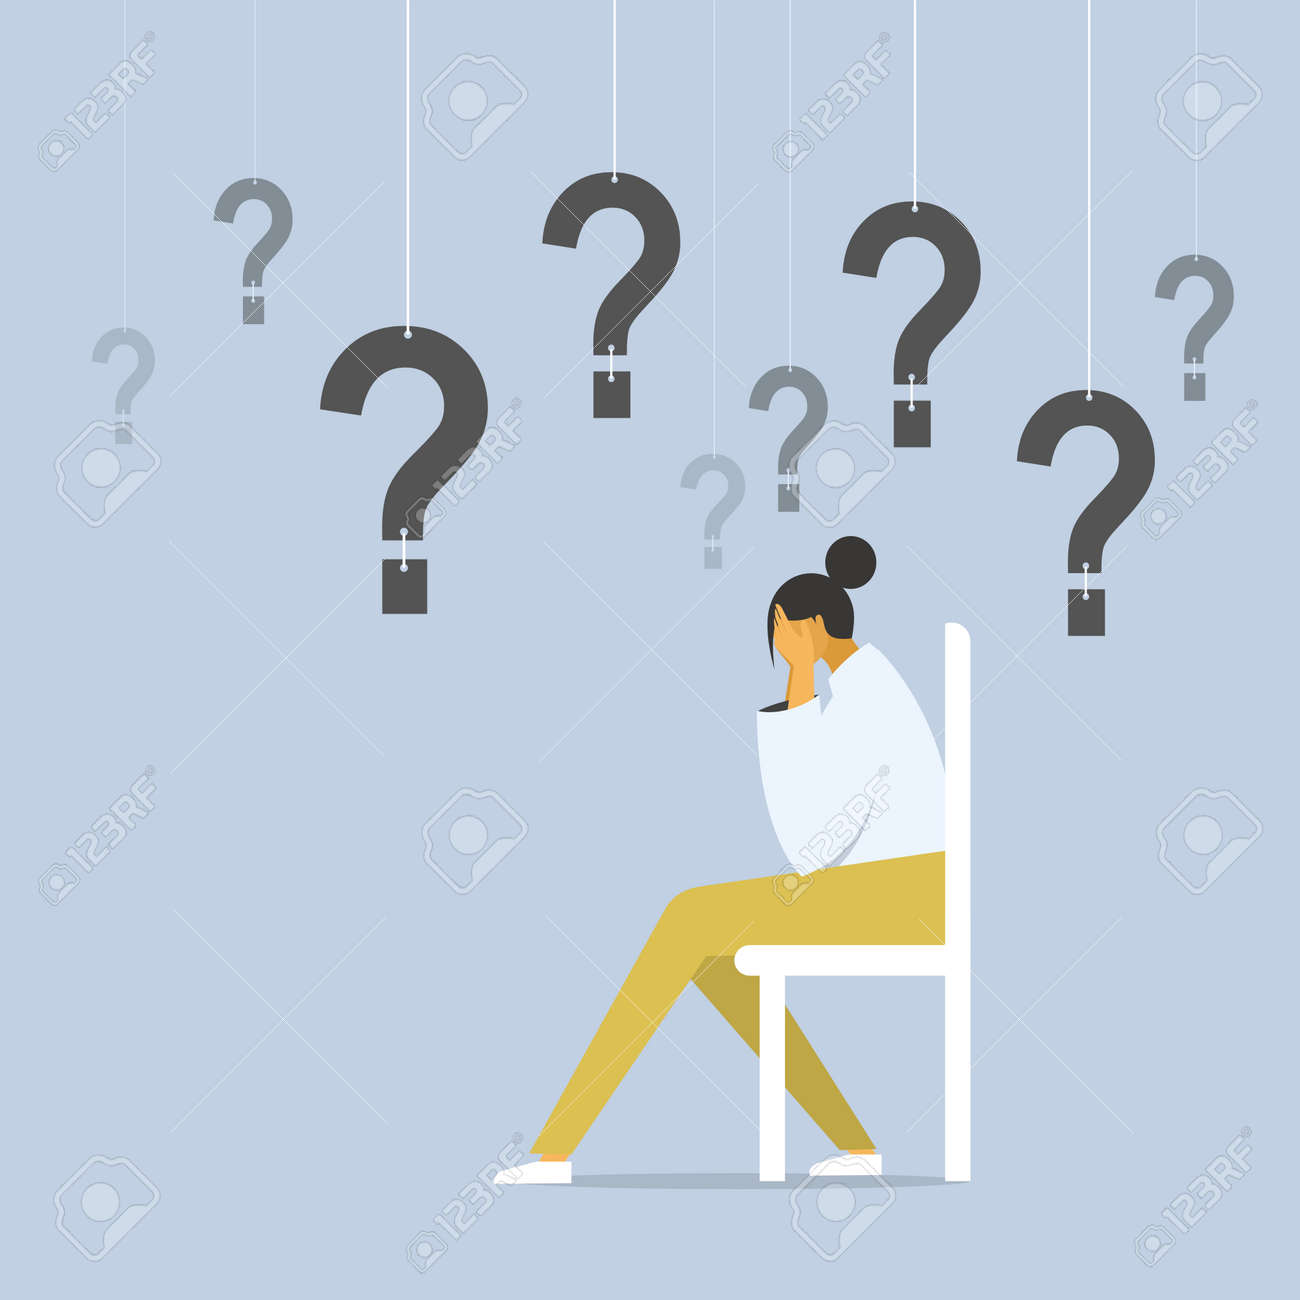 Conceptual illustration of a depressed girl sitting on a chair with questions hanging around her - 170582377